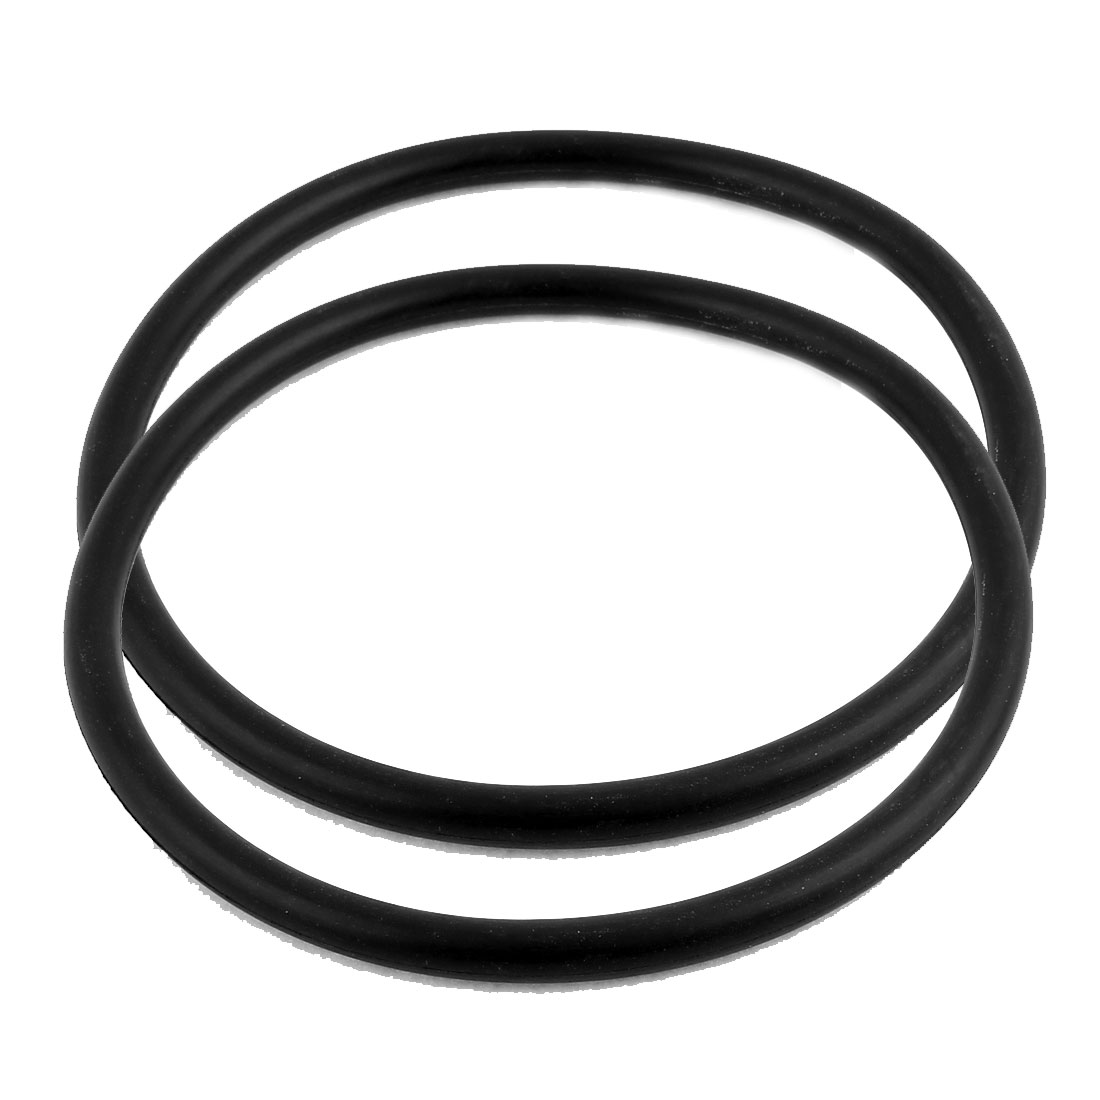 2Pcs Black Universal O-Ring 150mm x 8.6mm BUNA-N Material Oil Seal Washers Grommets